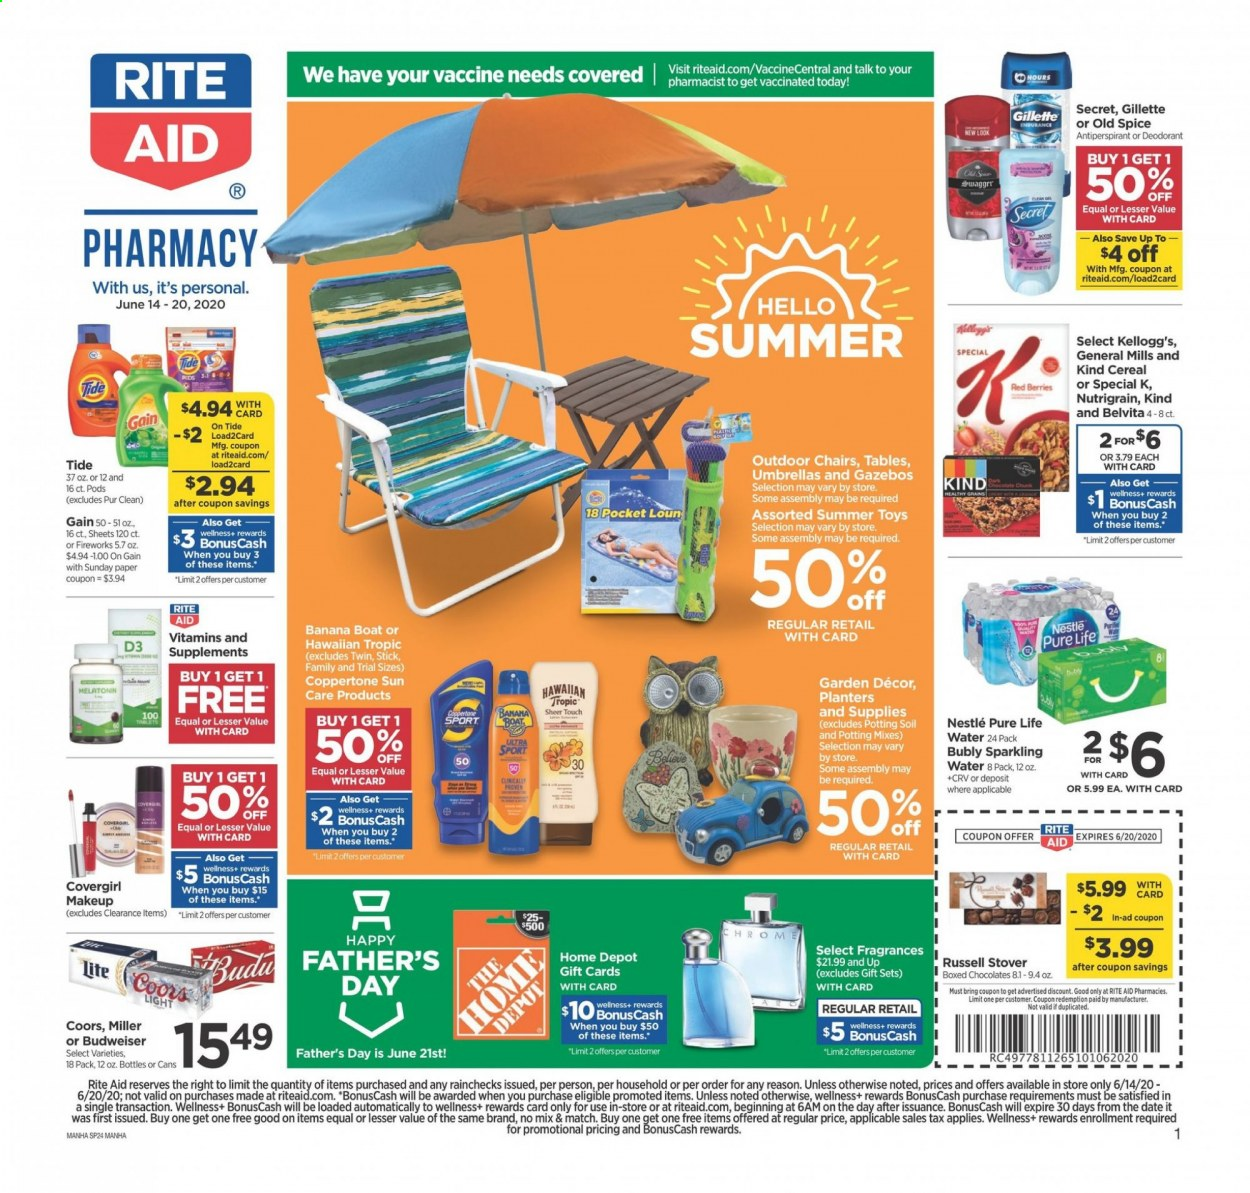 RITE AID Flyer - 06.14.2020 - 06.20.2020 - Sales products - Budweiser, Coors, Nestlé, cereals, sparkling water, water, Gain, Tide, Old Spice, anti-perspirant, secret, Gillette, makeup, toys, Melatonin. Page 1.